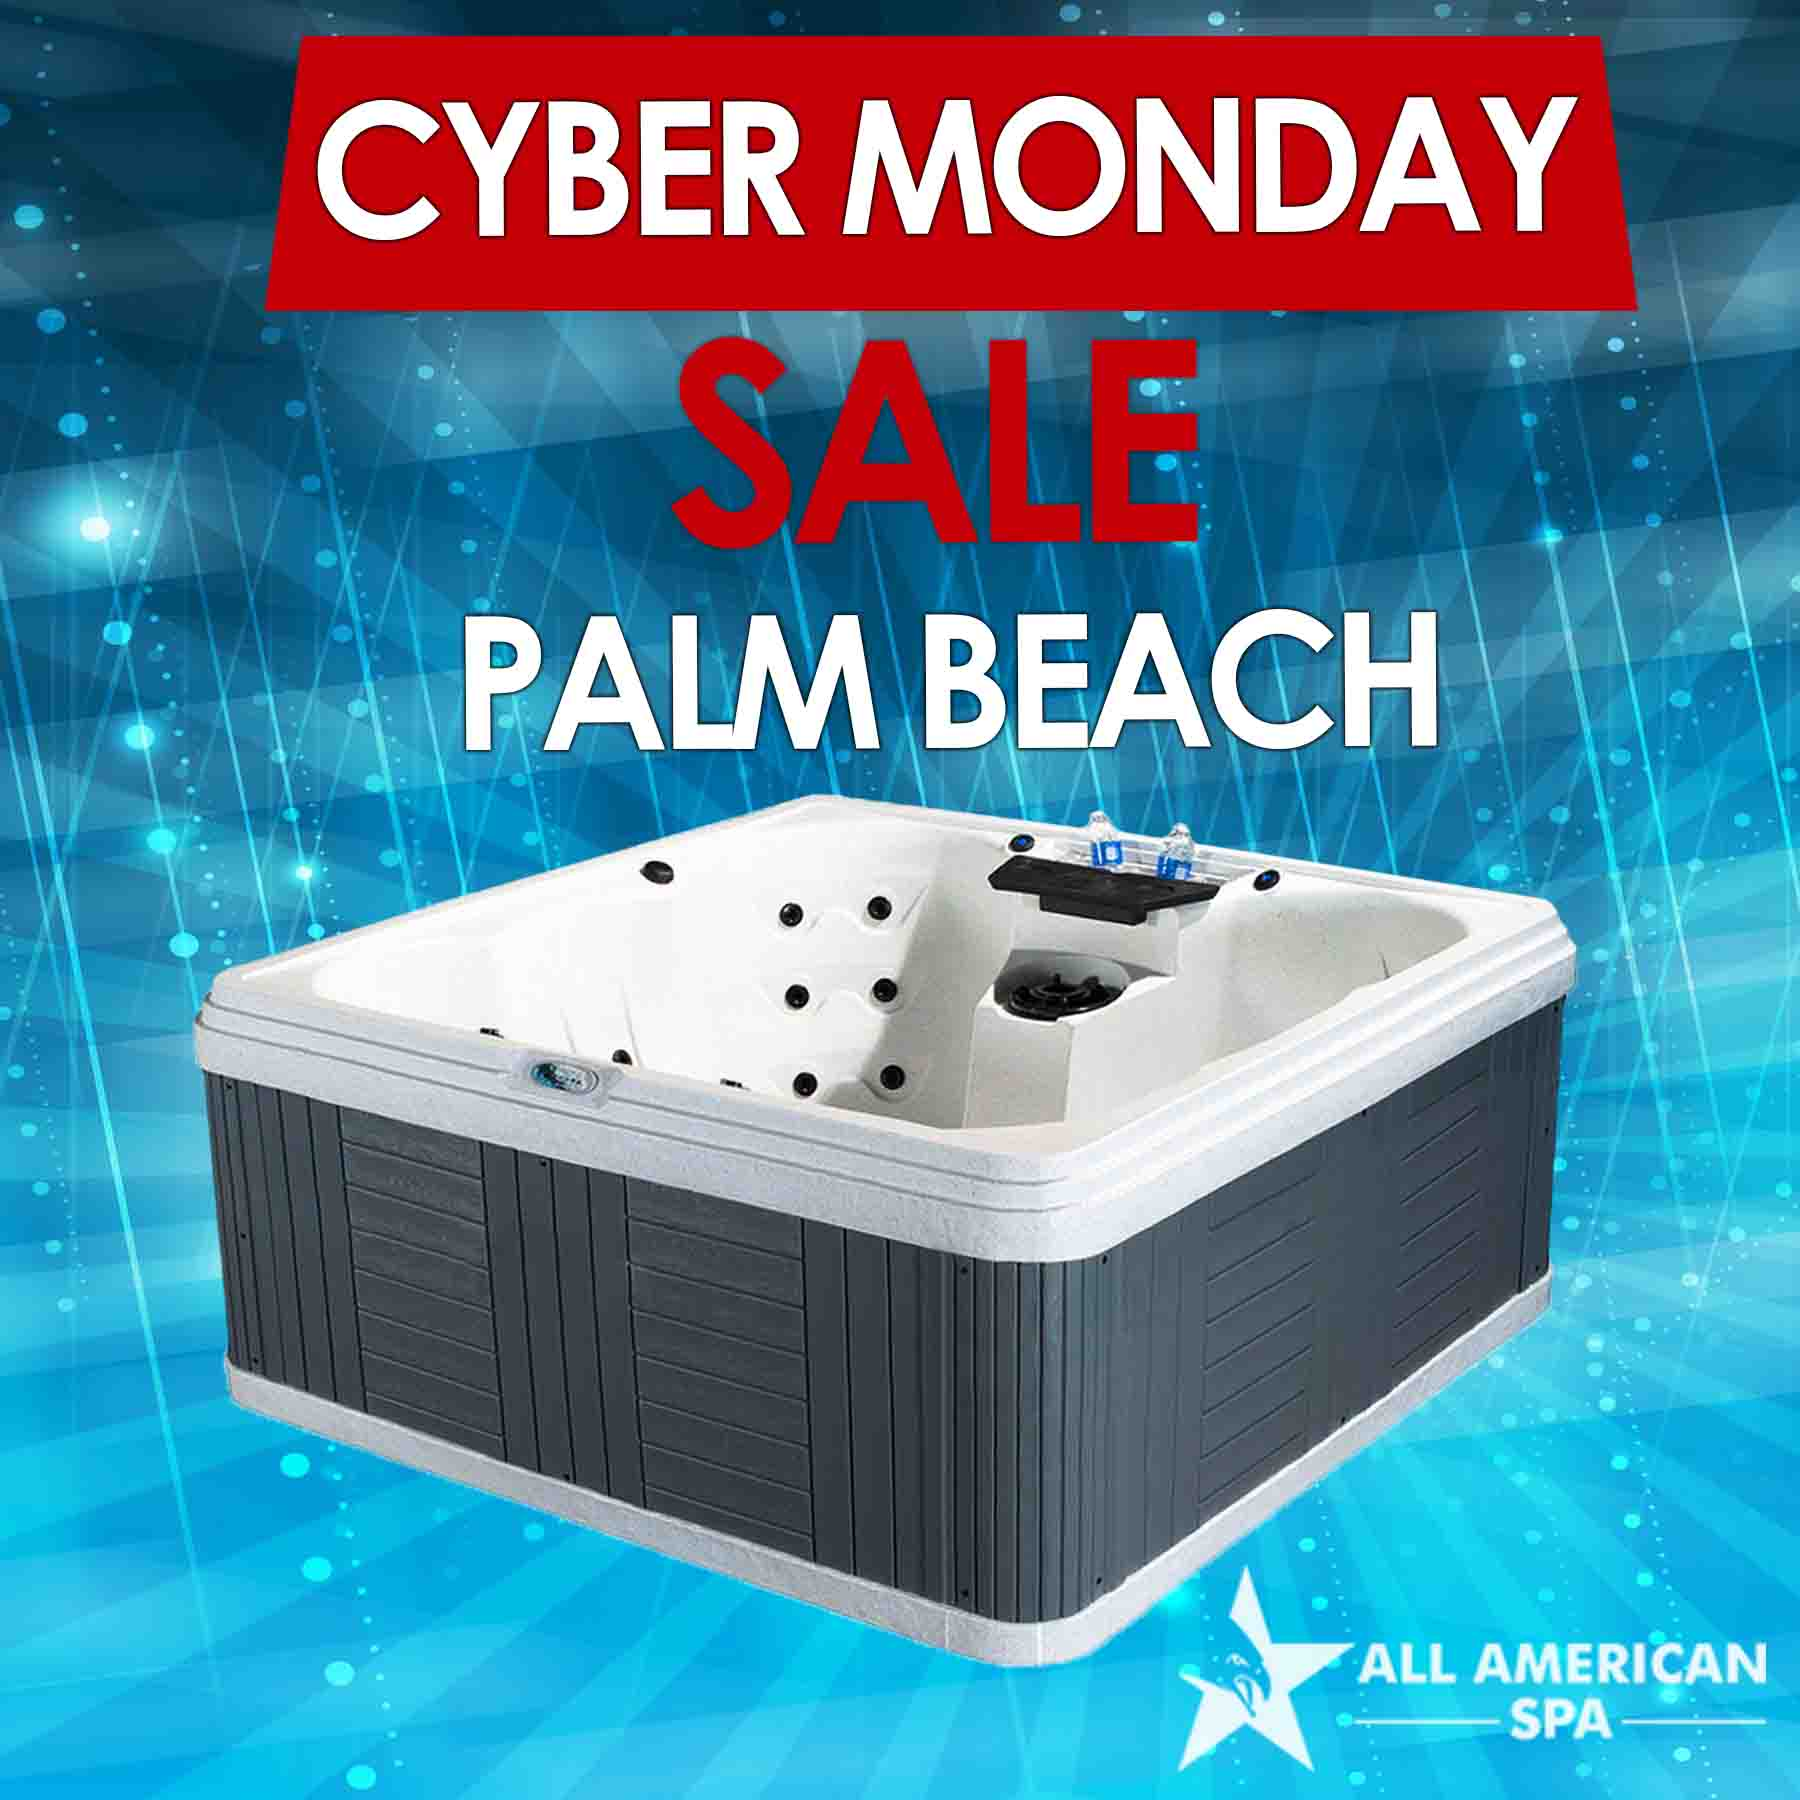 Palm Beach 7 Seater Hot Tub Cyber Monday Sale | All American Spa ...